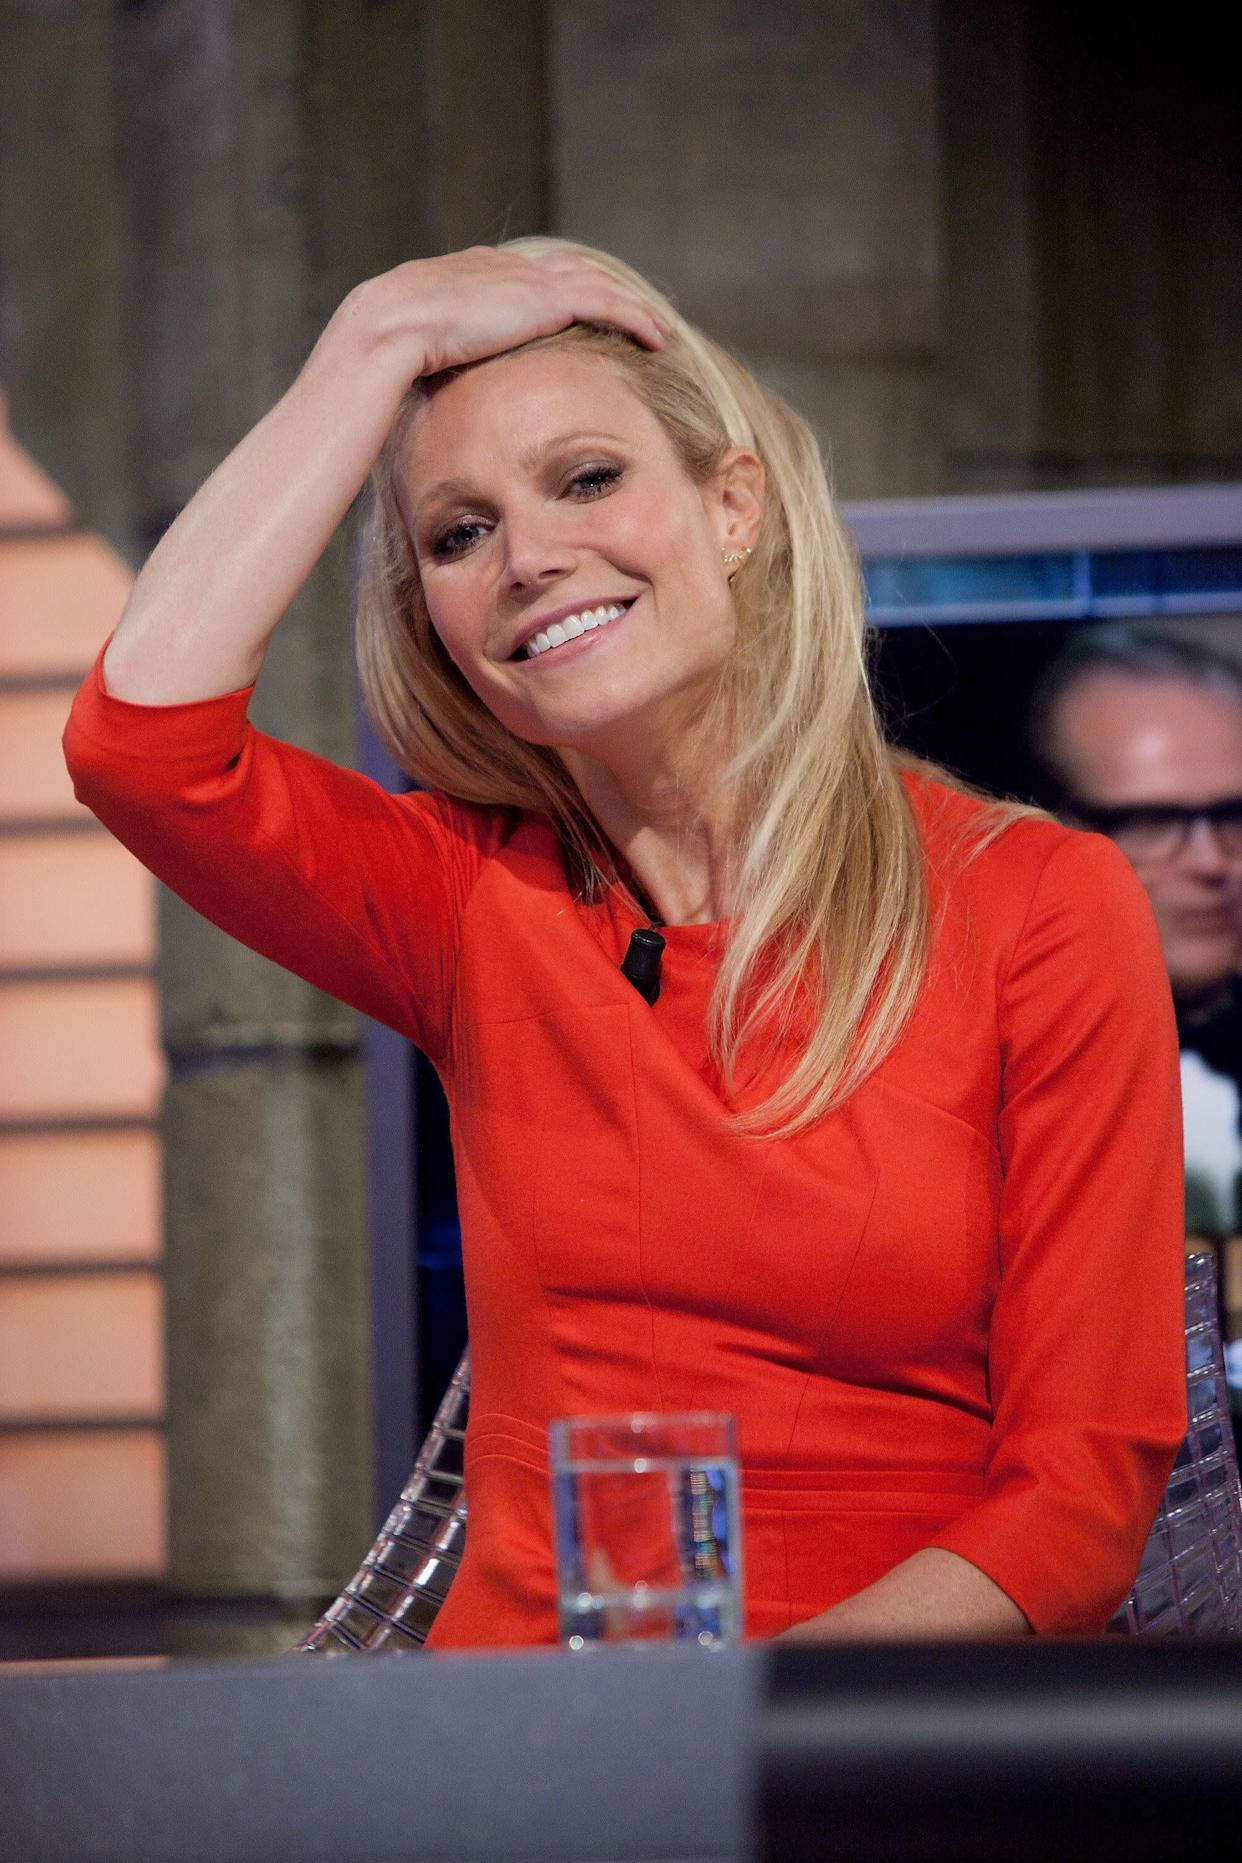 """<a href=""""http://www.redbookmag.com/fun-contests/celebrity/gwyneth-paltrow-tracy-anderson-interview#slide-1"""" rel=""""nofollow noopener"""" target=""""_blank"""" data-ylk=""""slk:Speaking about Tracy Anderson's fitness method"""" class=""""link rapid-noclick-resp"""">Speaking about Tracy Anderson's fitness method</a>, Paltrow told Redbook magazine: """"It did such wonders for my life, my confidence, my sex life, everything."""""""